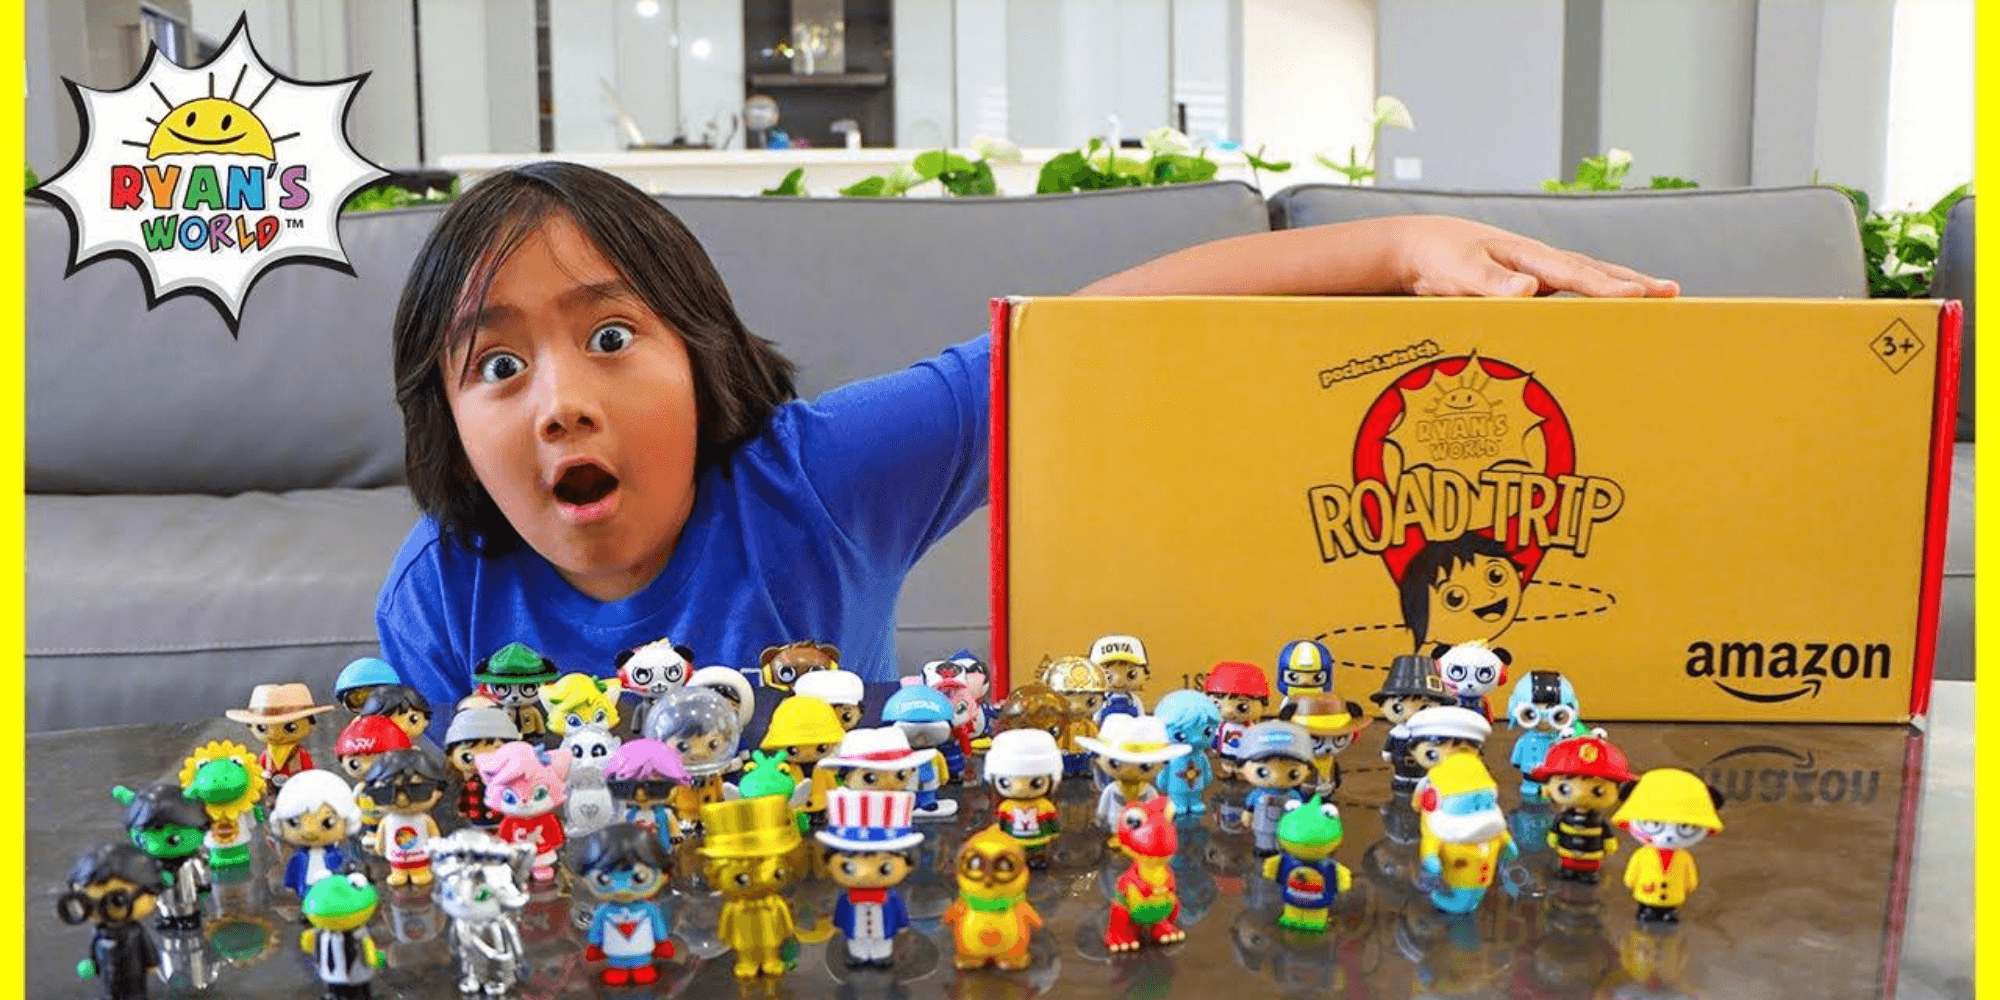 Ryan's World Toy Review